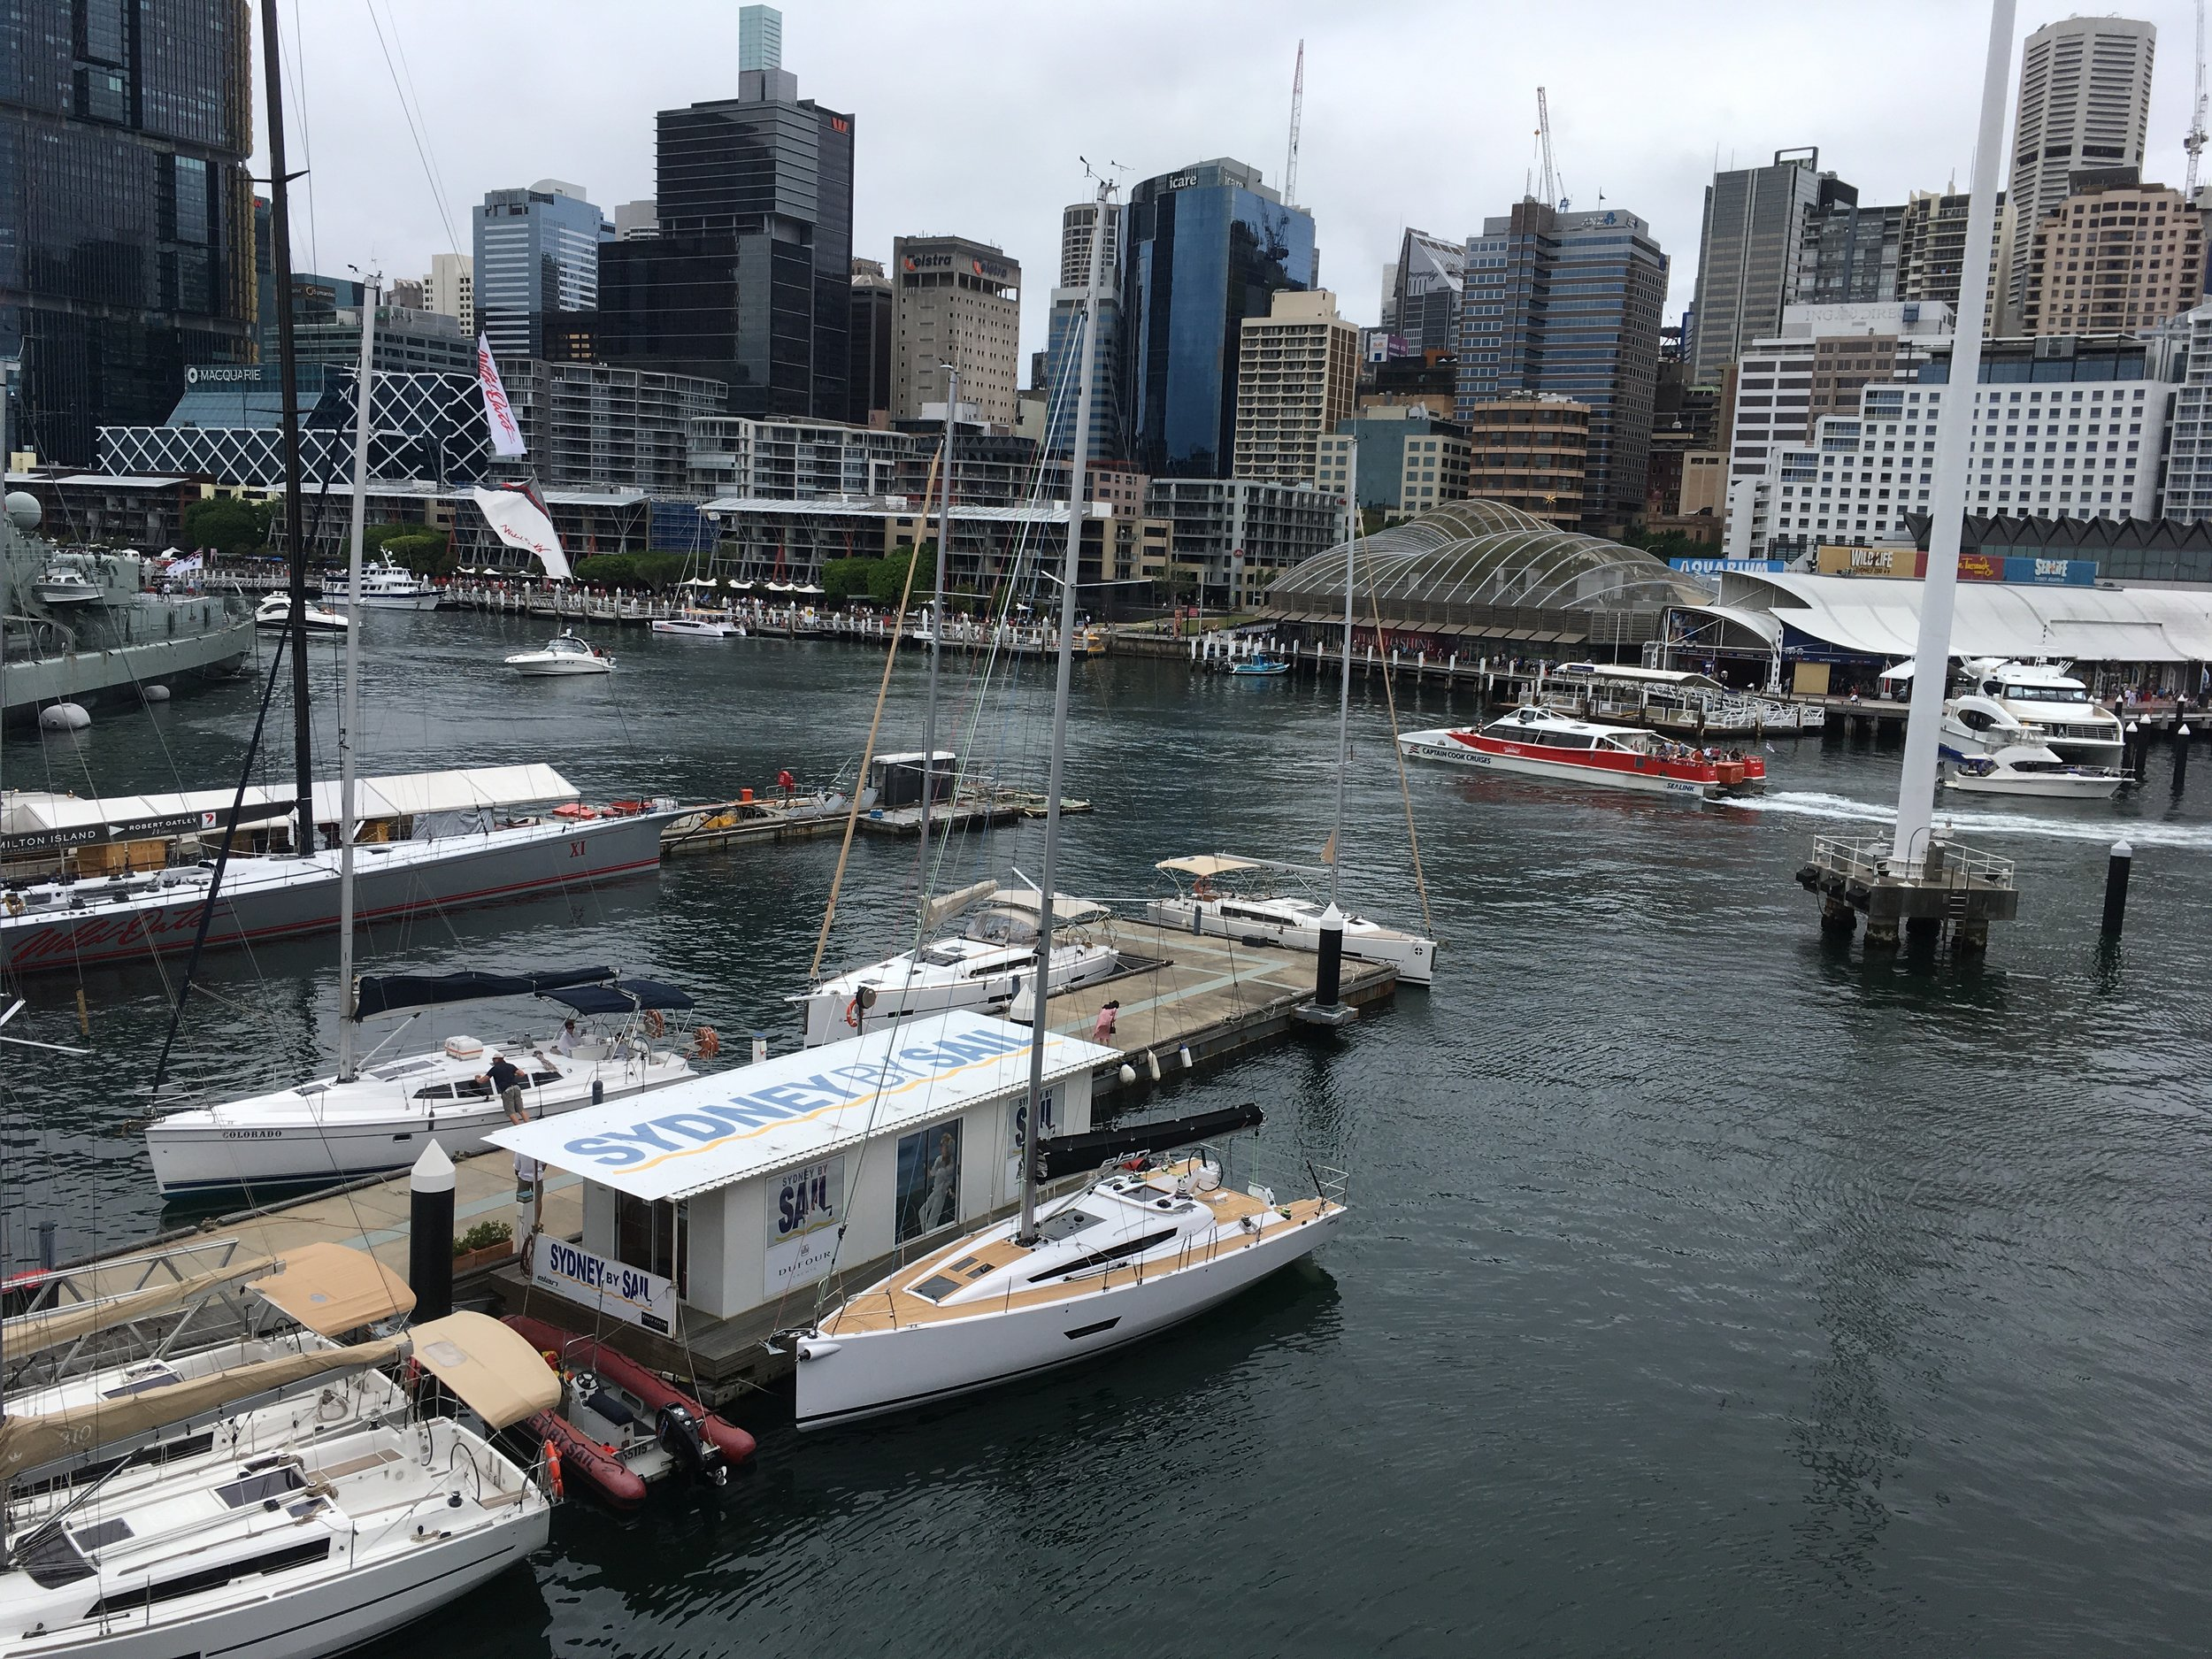 Darling Harbour #2.